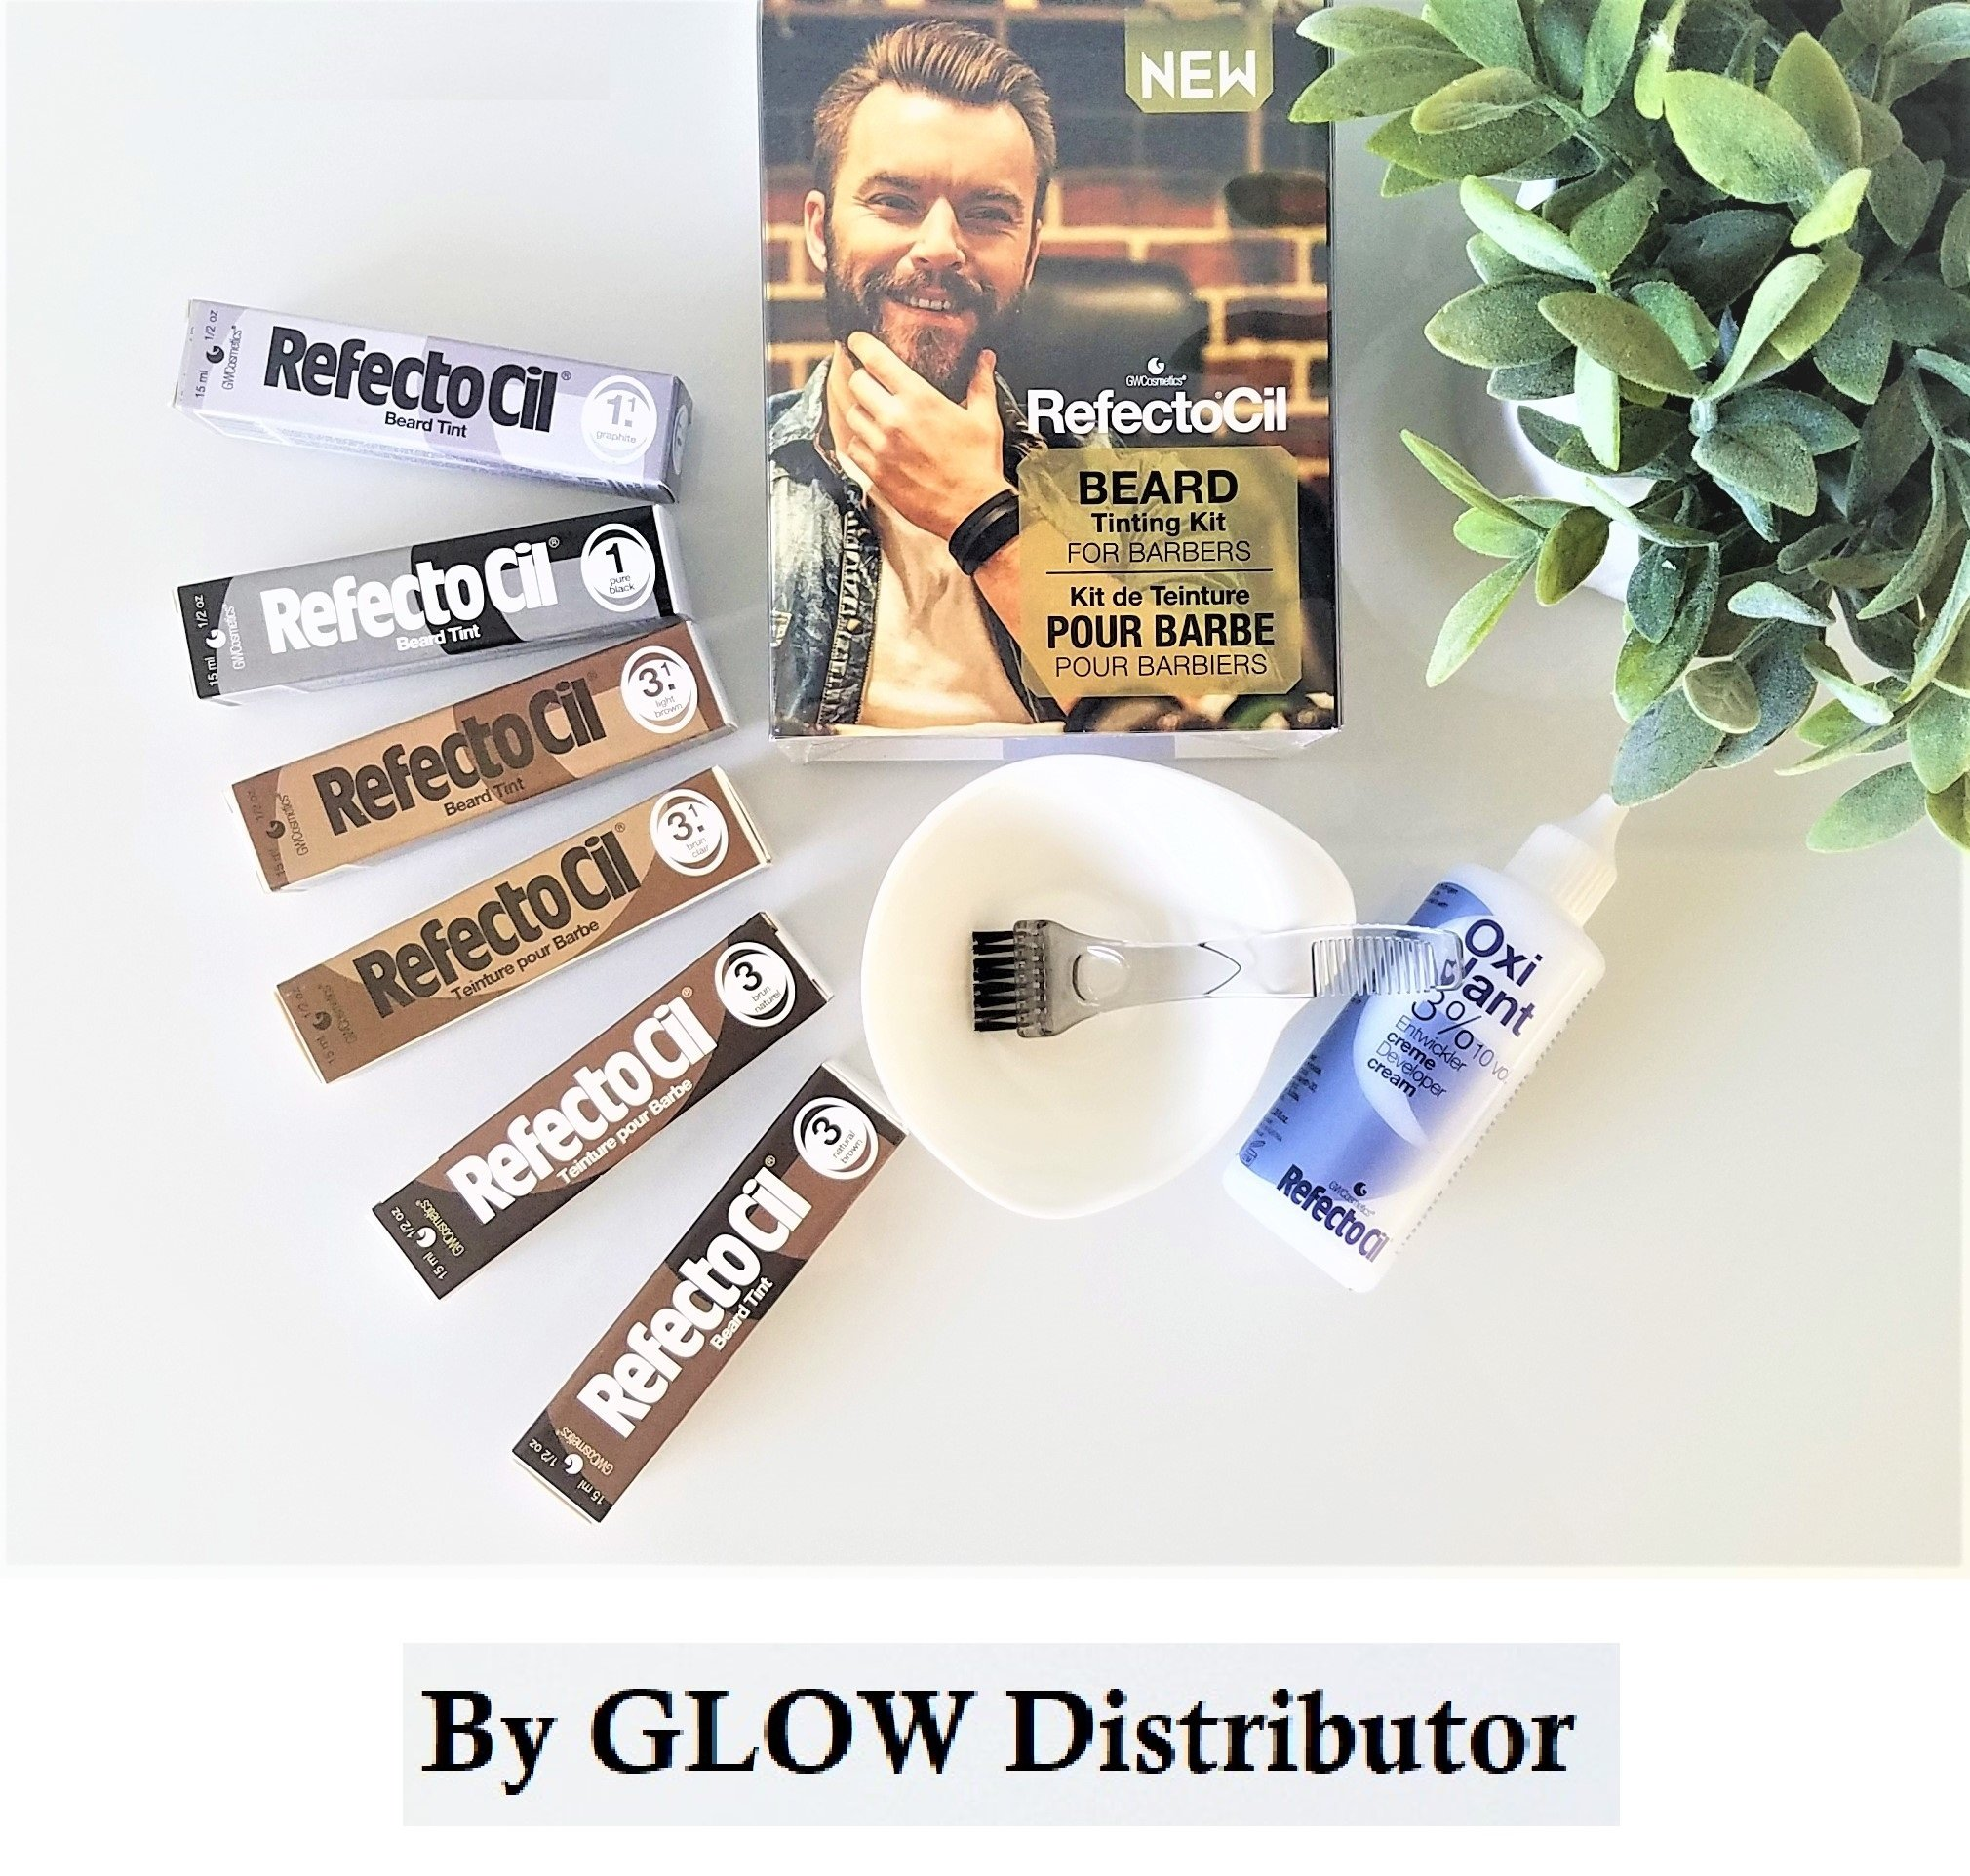 RefectoCil Beard Tinting Kit for Barbers